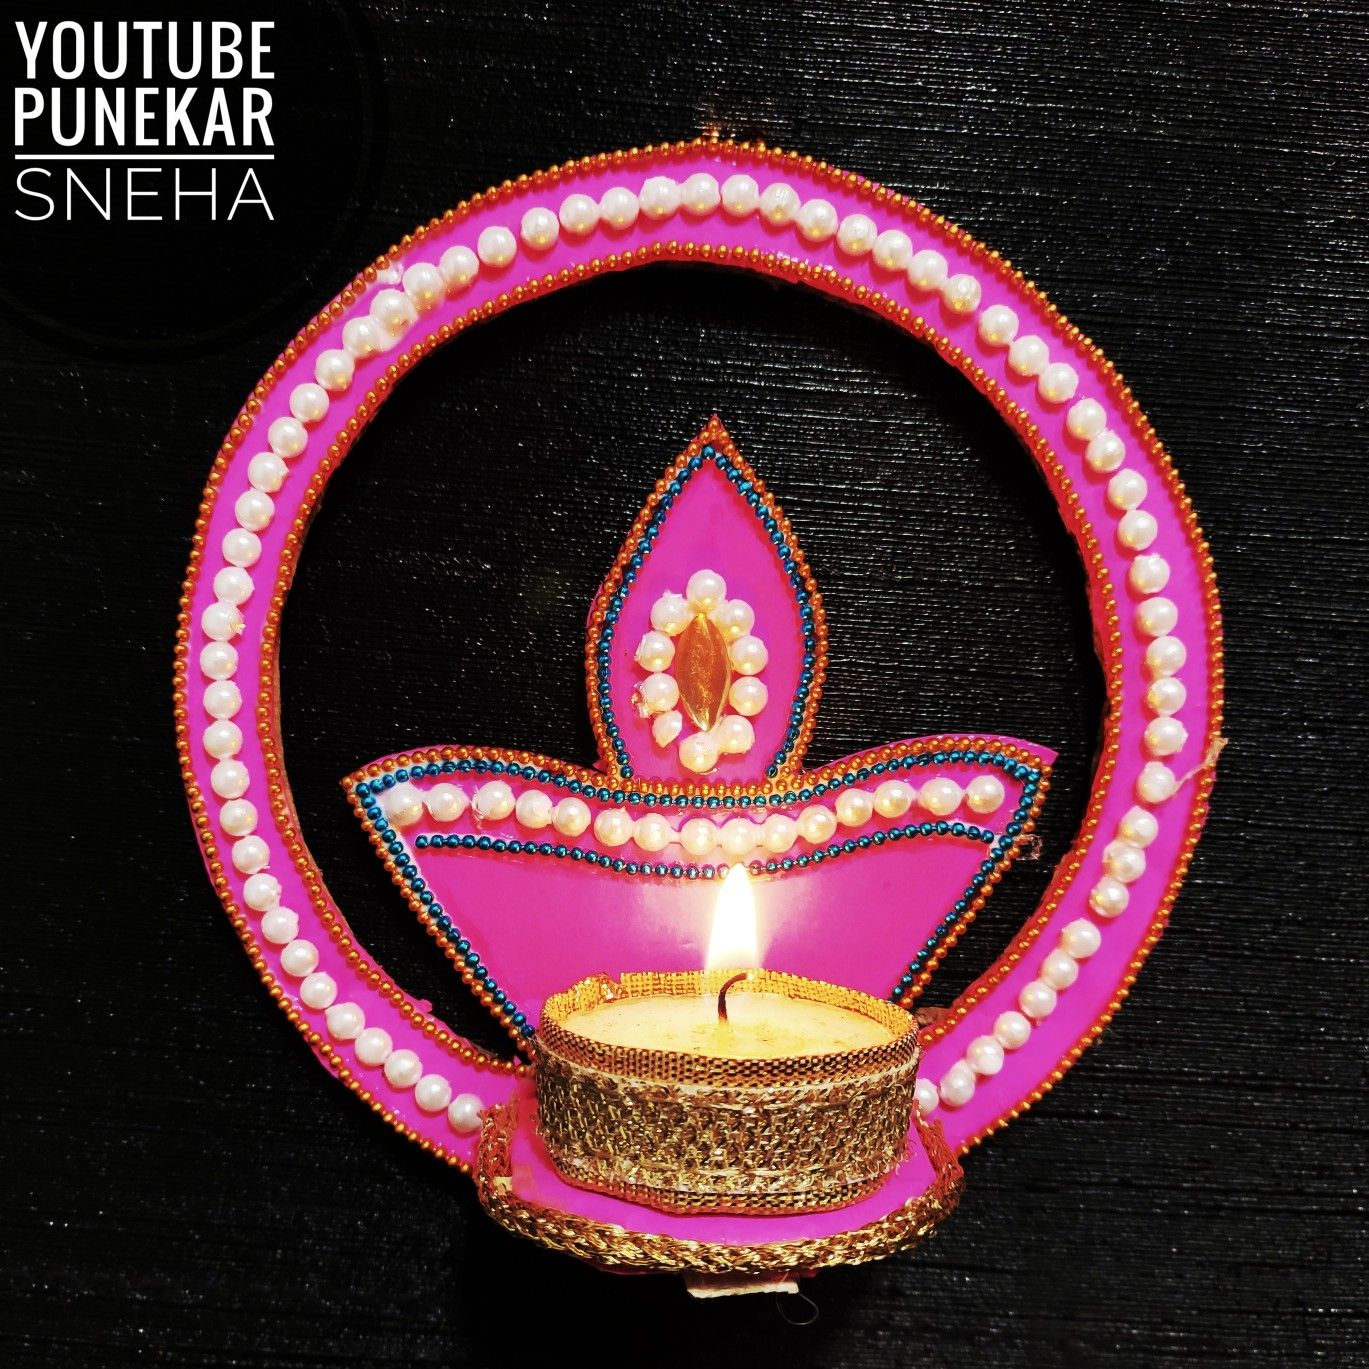 Pin Di Diwali Diya Decoration Ideas